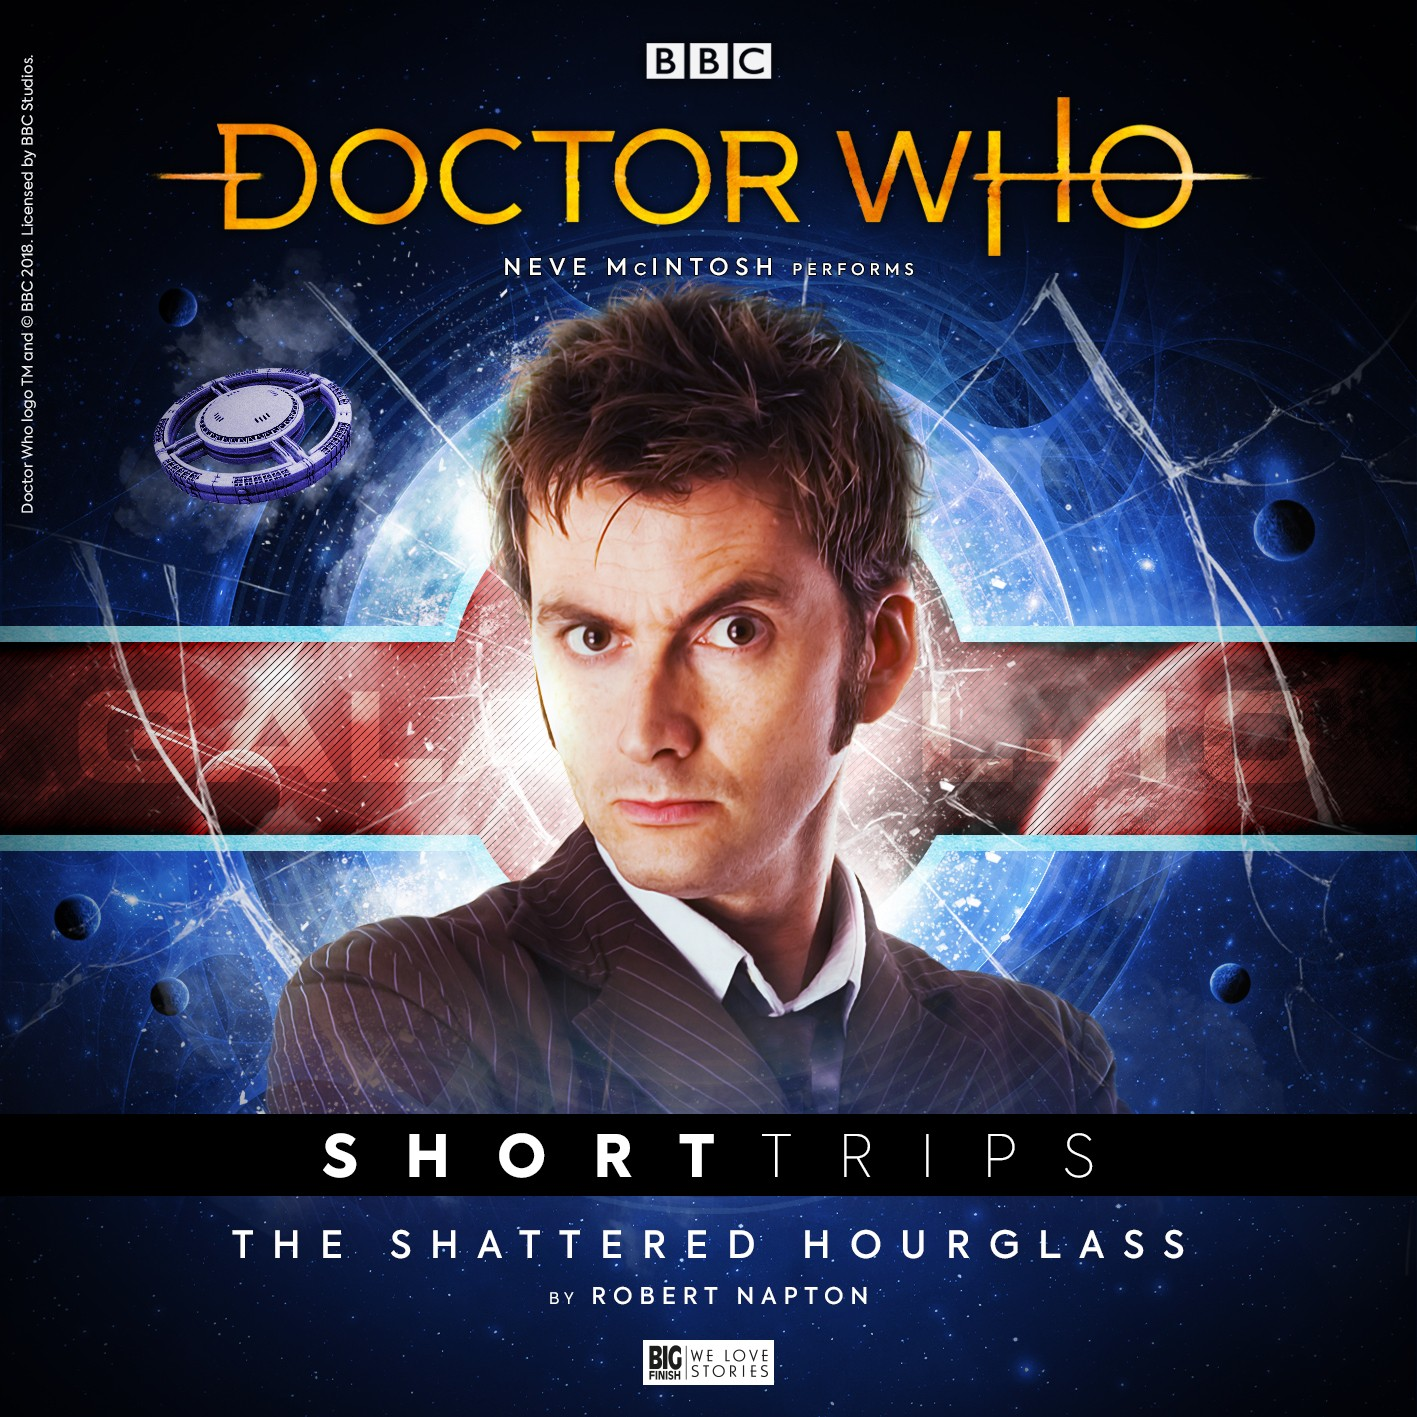 Reviewed: Big Finish's Doctor Who Short Trips – The Shattered Hourglass